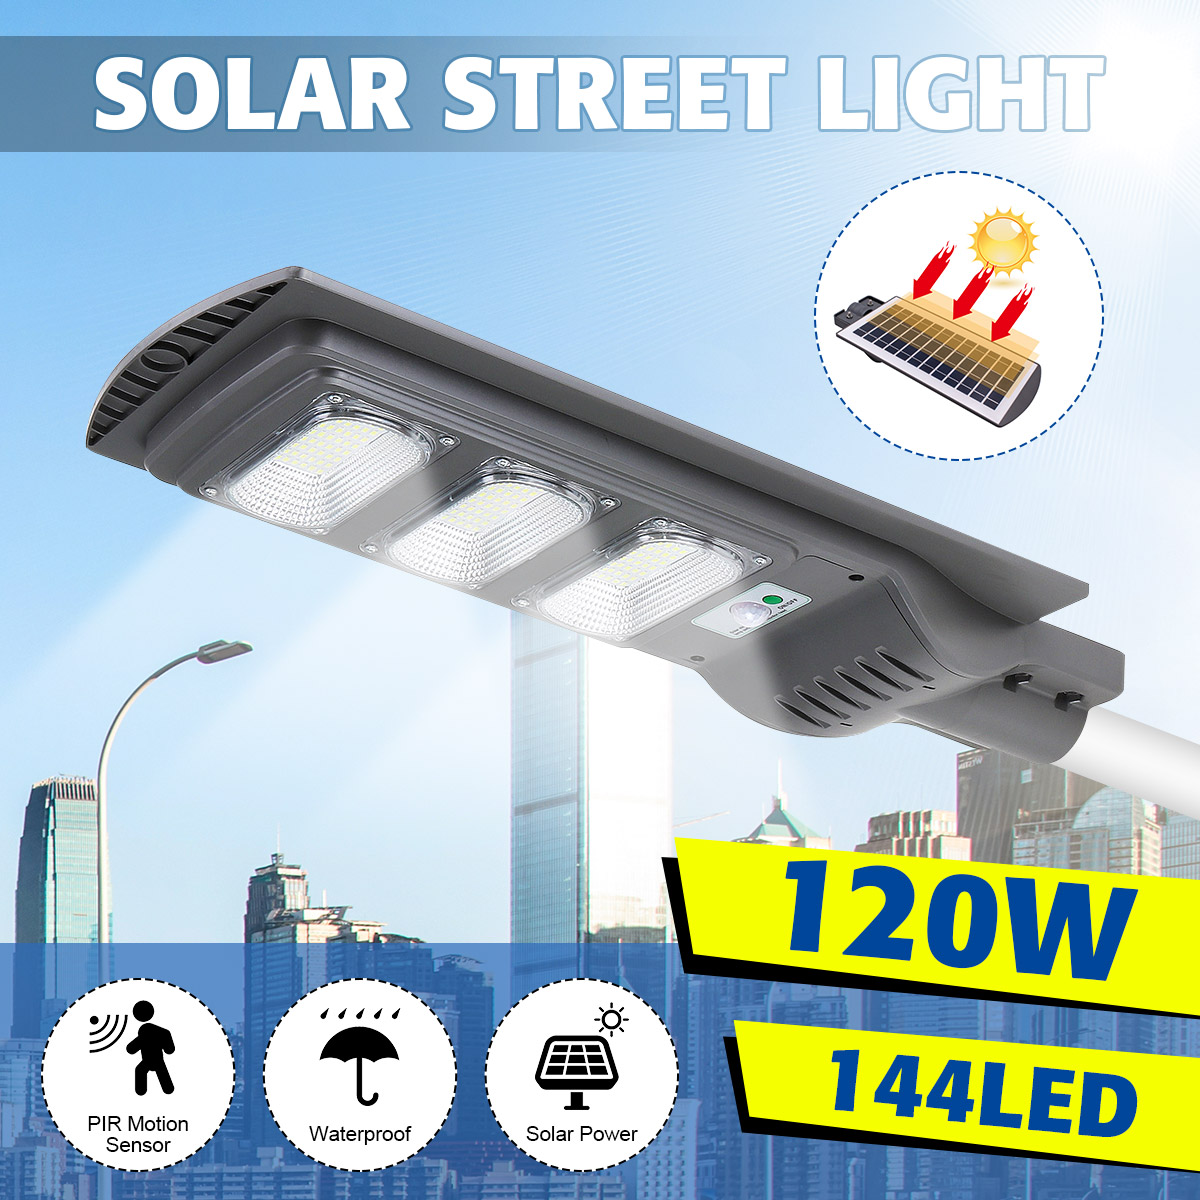 120W LED Solar Street Light Wall Lamp Light Control+Radar Induction+Timing Outdoor Lamp Waterproof Security Lamp For Garden Yard